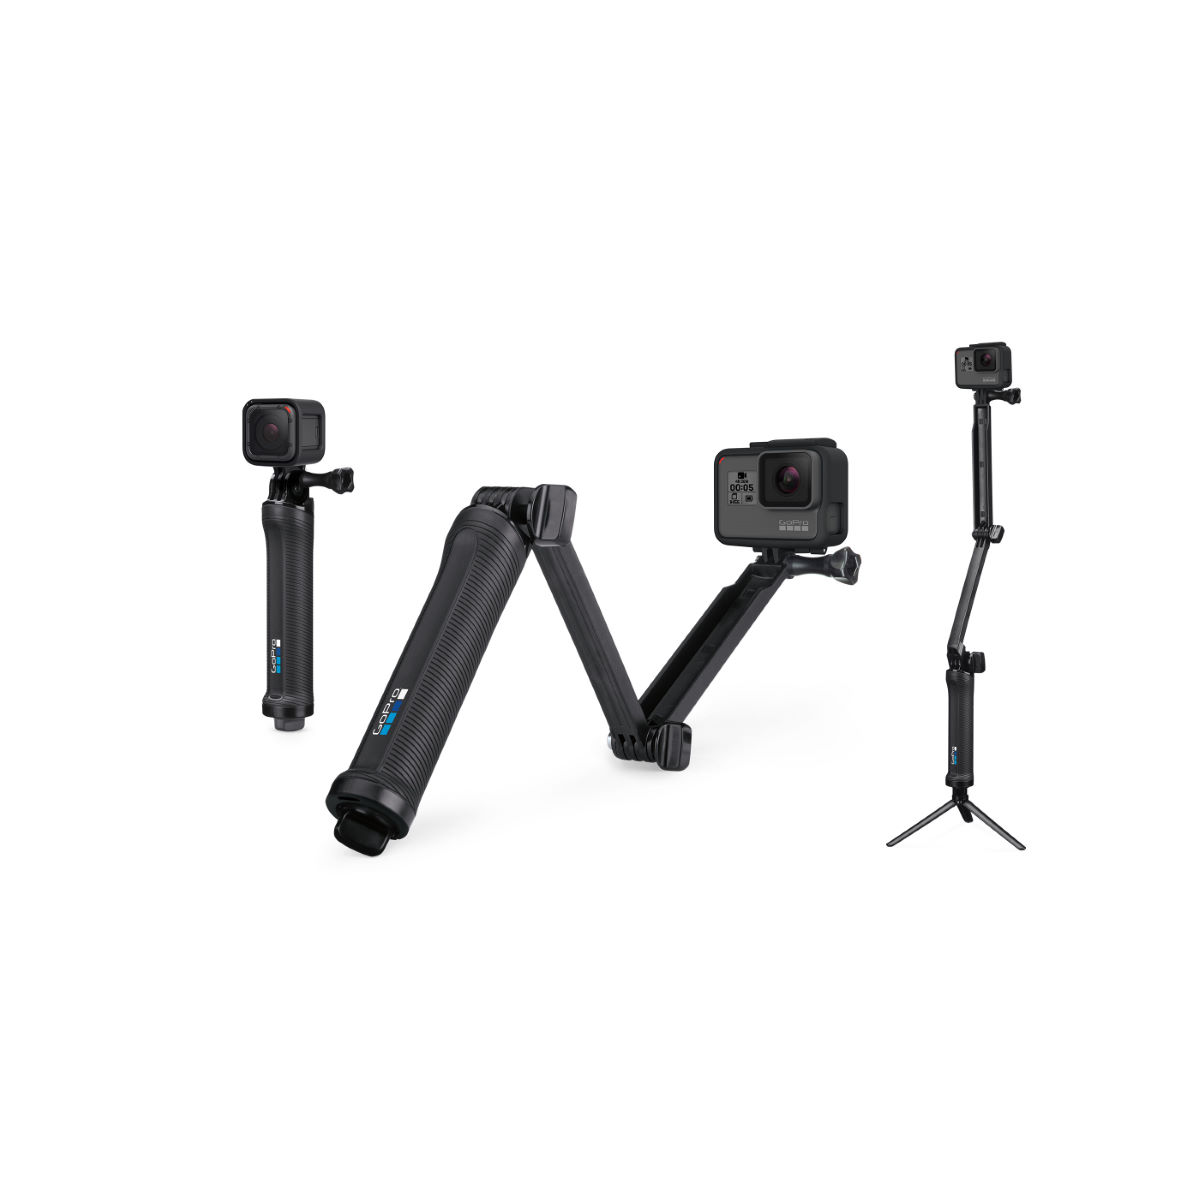 GoPro 3-Way - Cámaras digitales para cascos